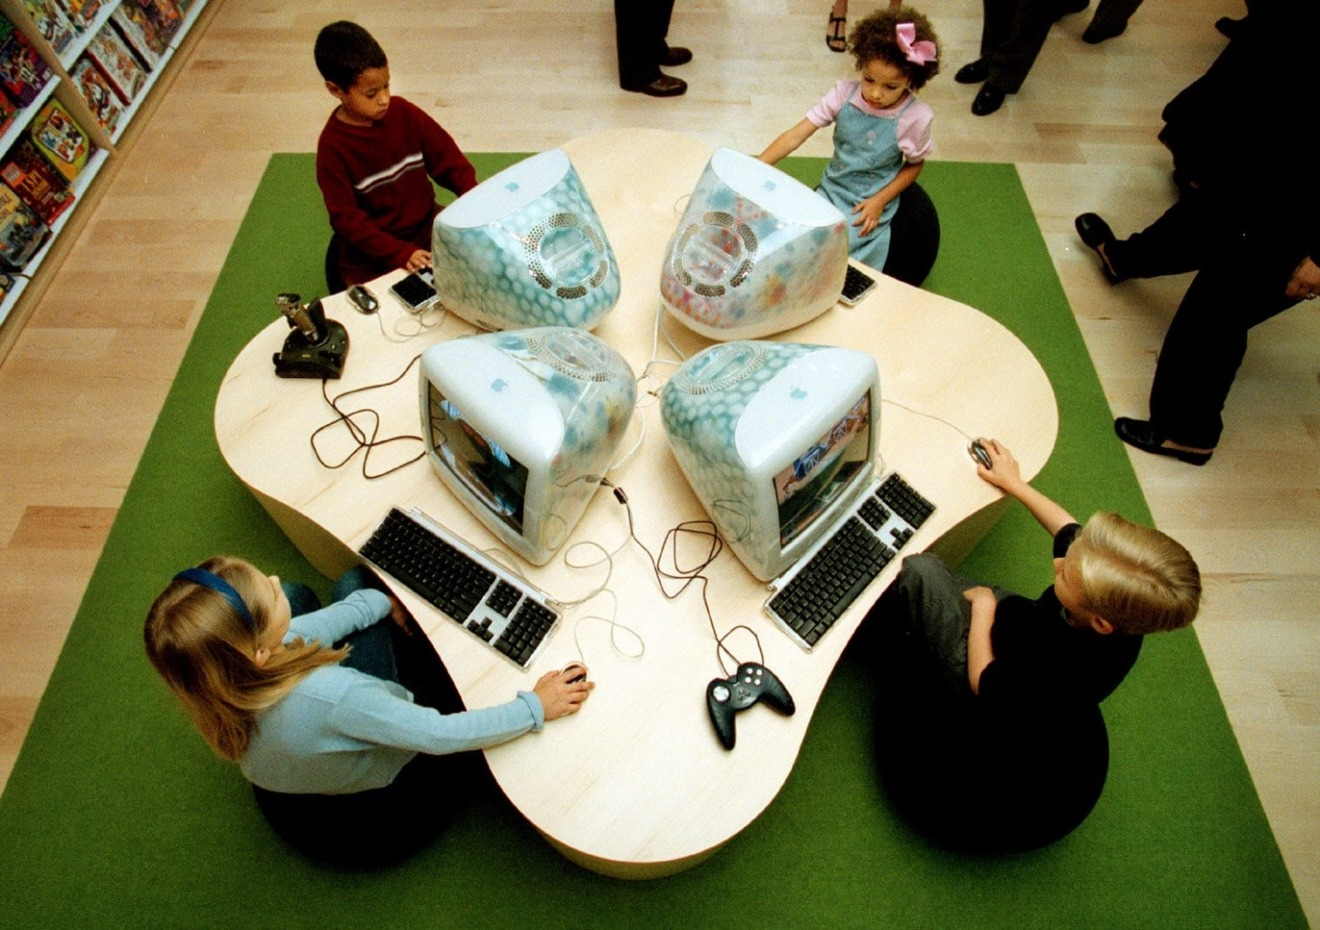 Children using the Flower Power iMacs at Tyson's Corner, the day it opened